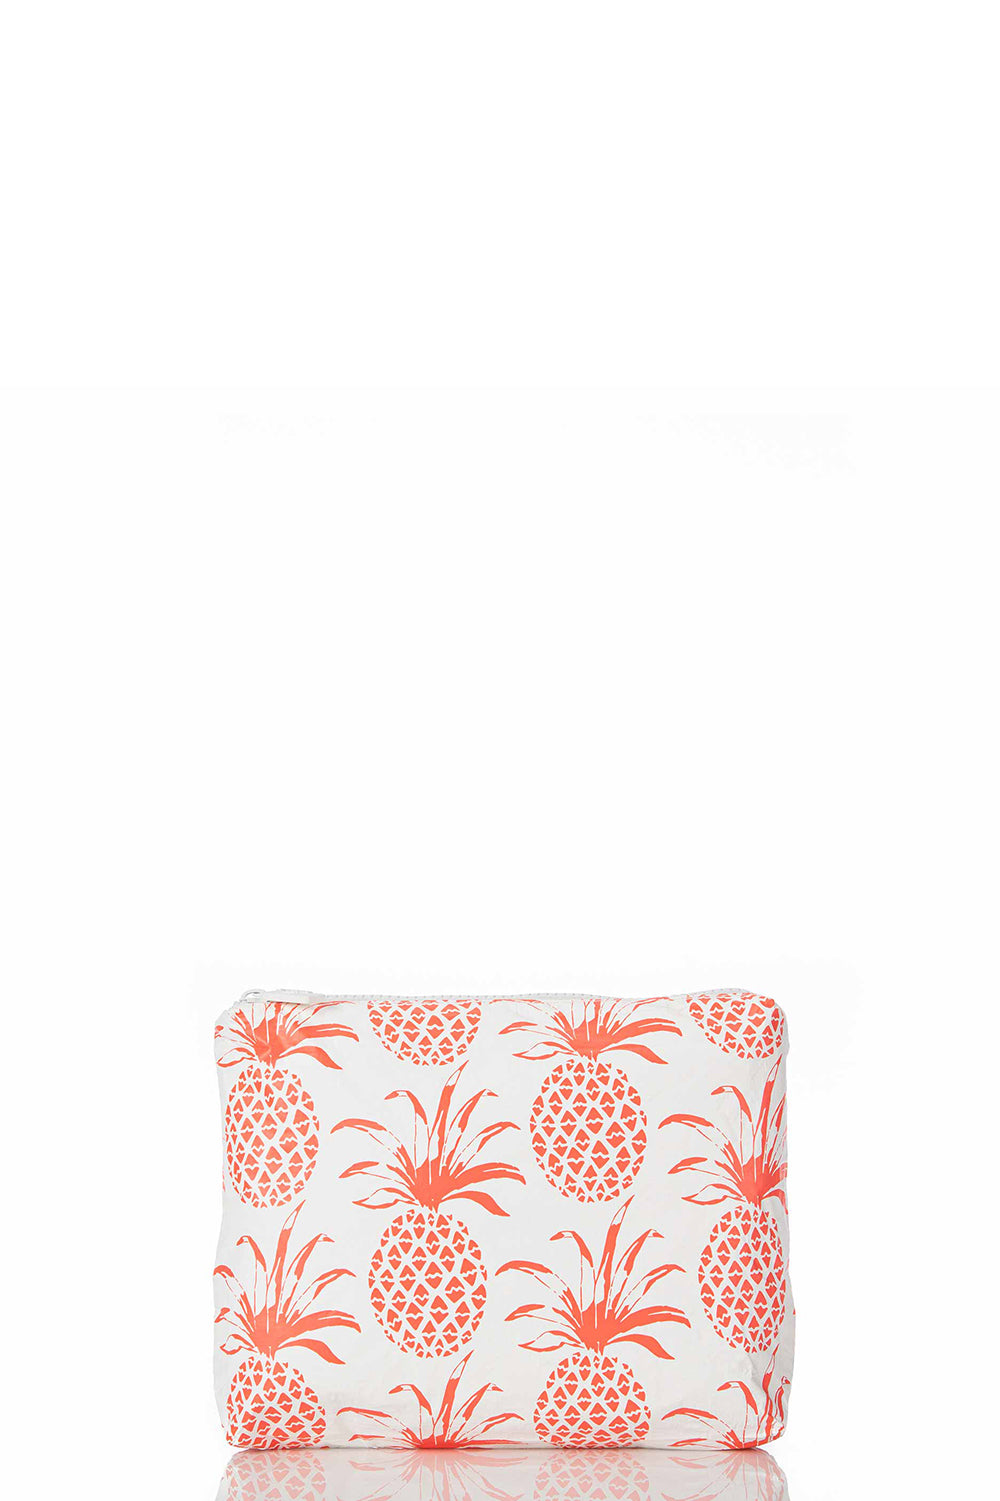 ALOHA Collection Small Pina Sola Pouch in Neon Coral